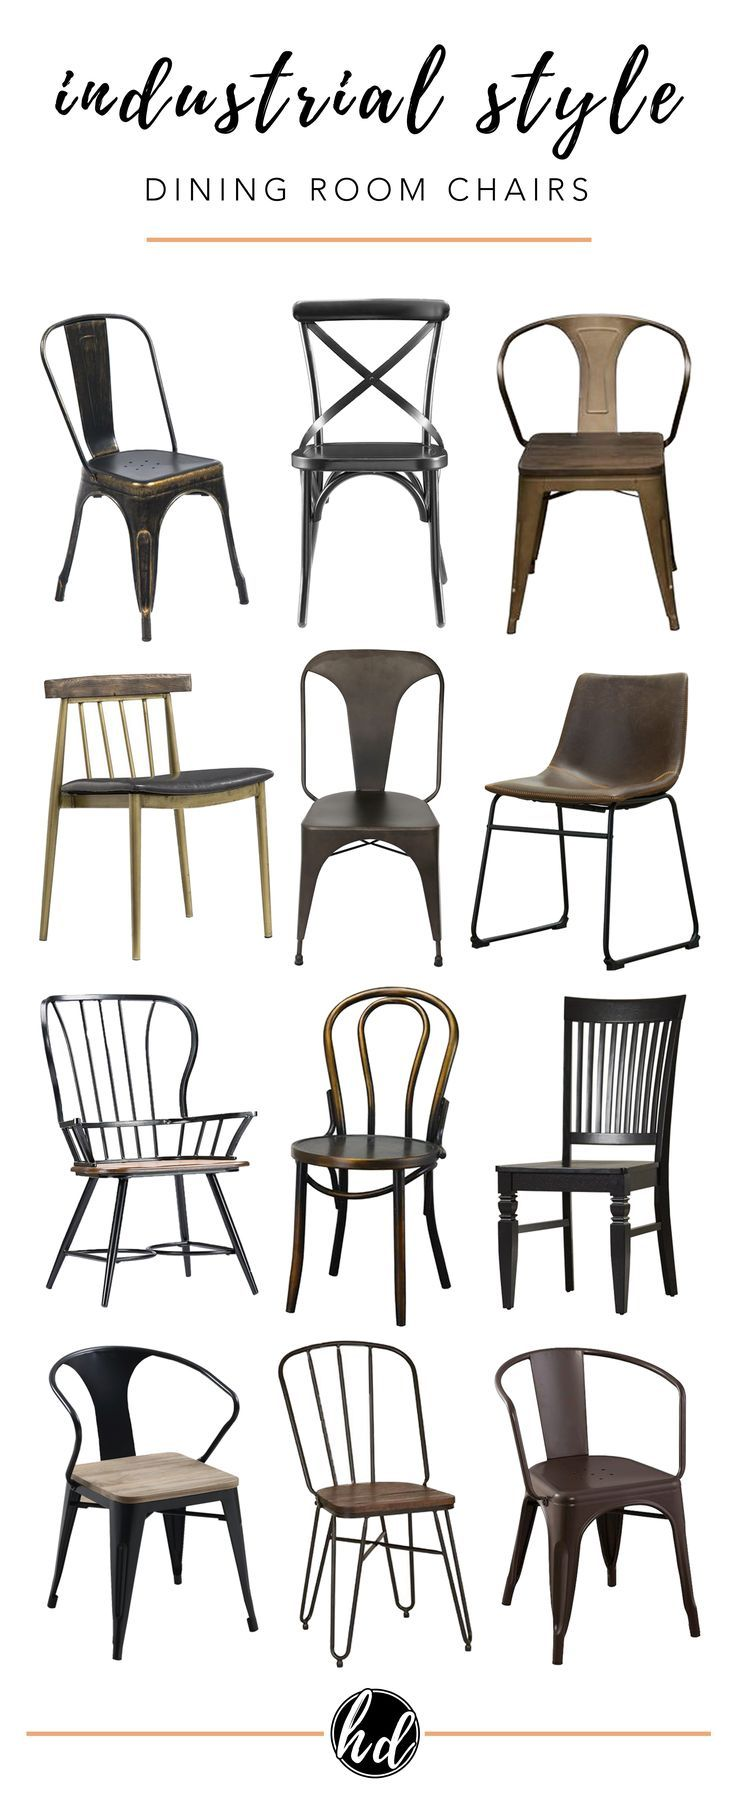 Industrial Dining Chairs, Industrial Style Dining Room Chairs